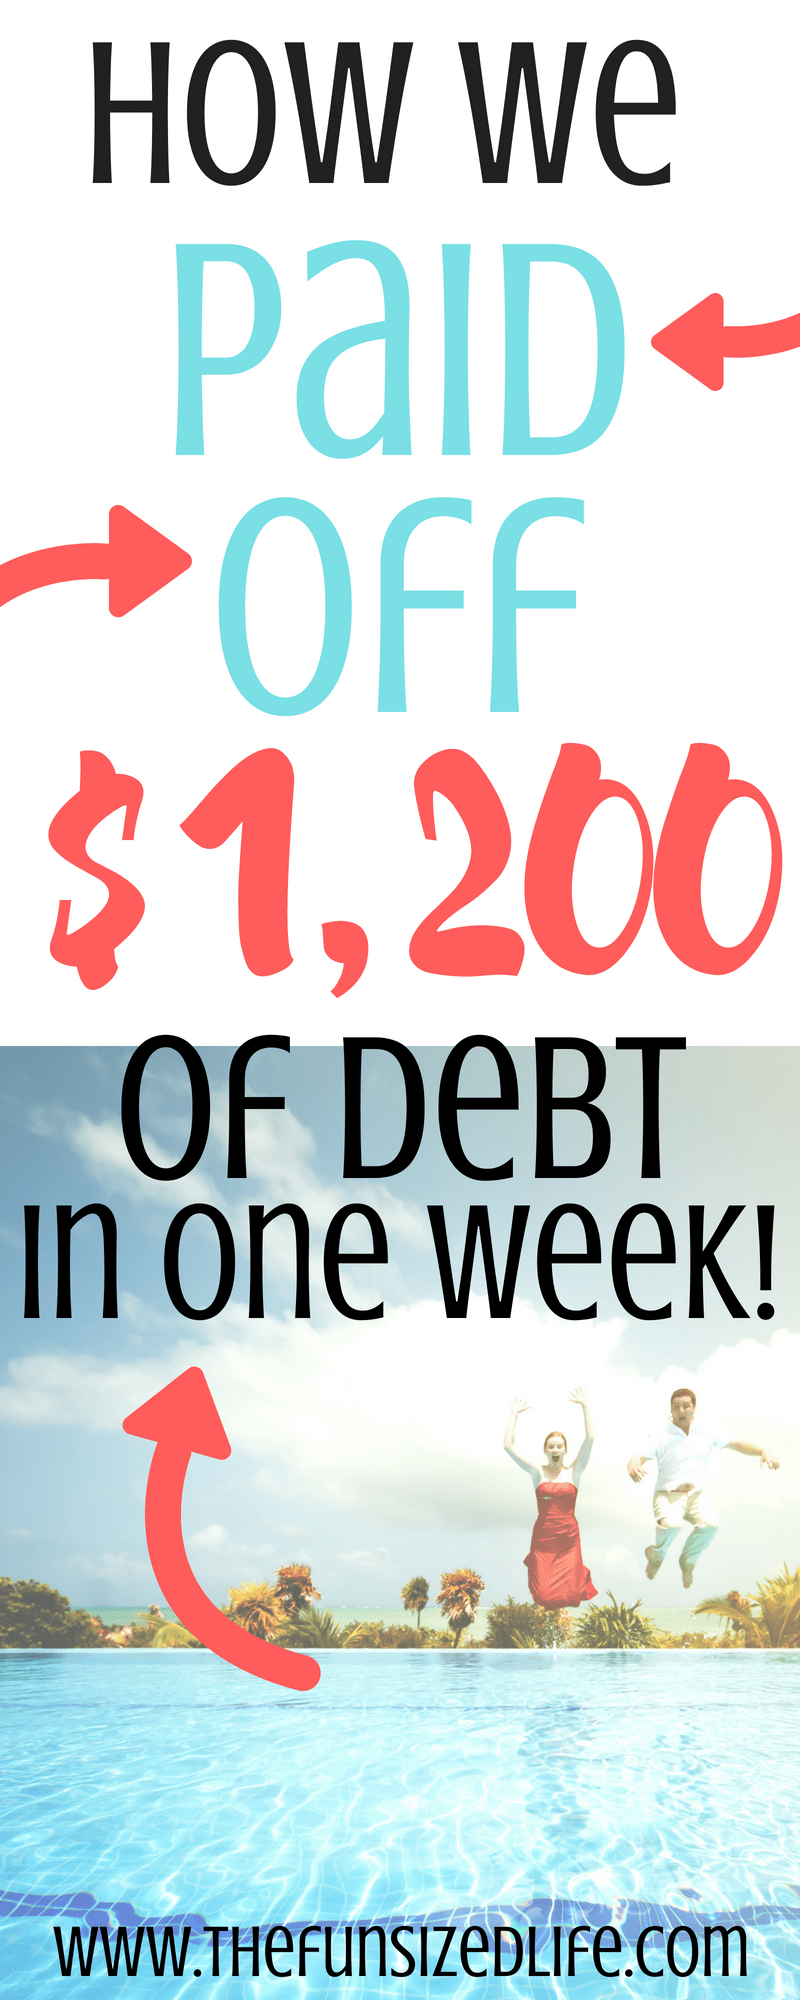 Paying off debt doesn't have to be that hard! We paid off over $1,200 in one week! See how we did it! #payoffdebt #debtpayoff #debtsnowball #debt #sidehustles #makemoney